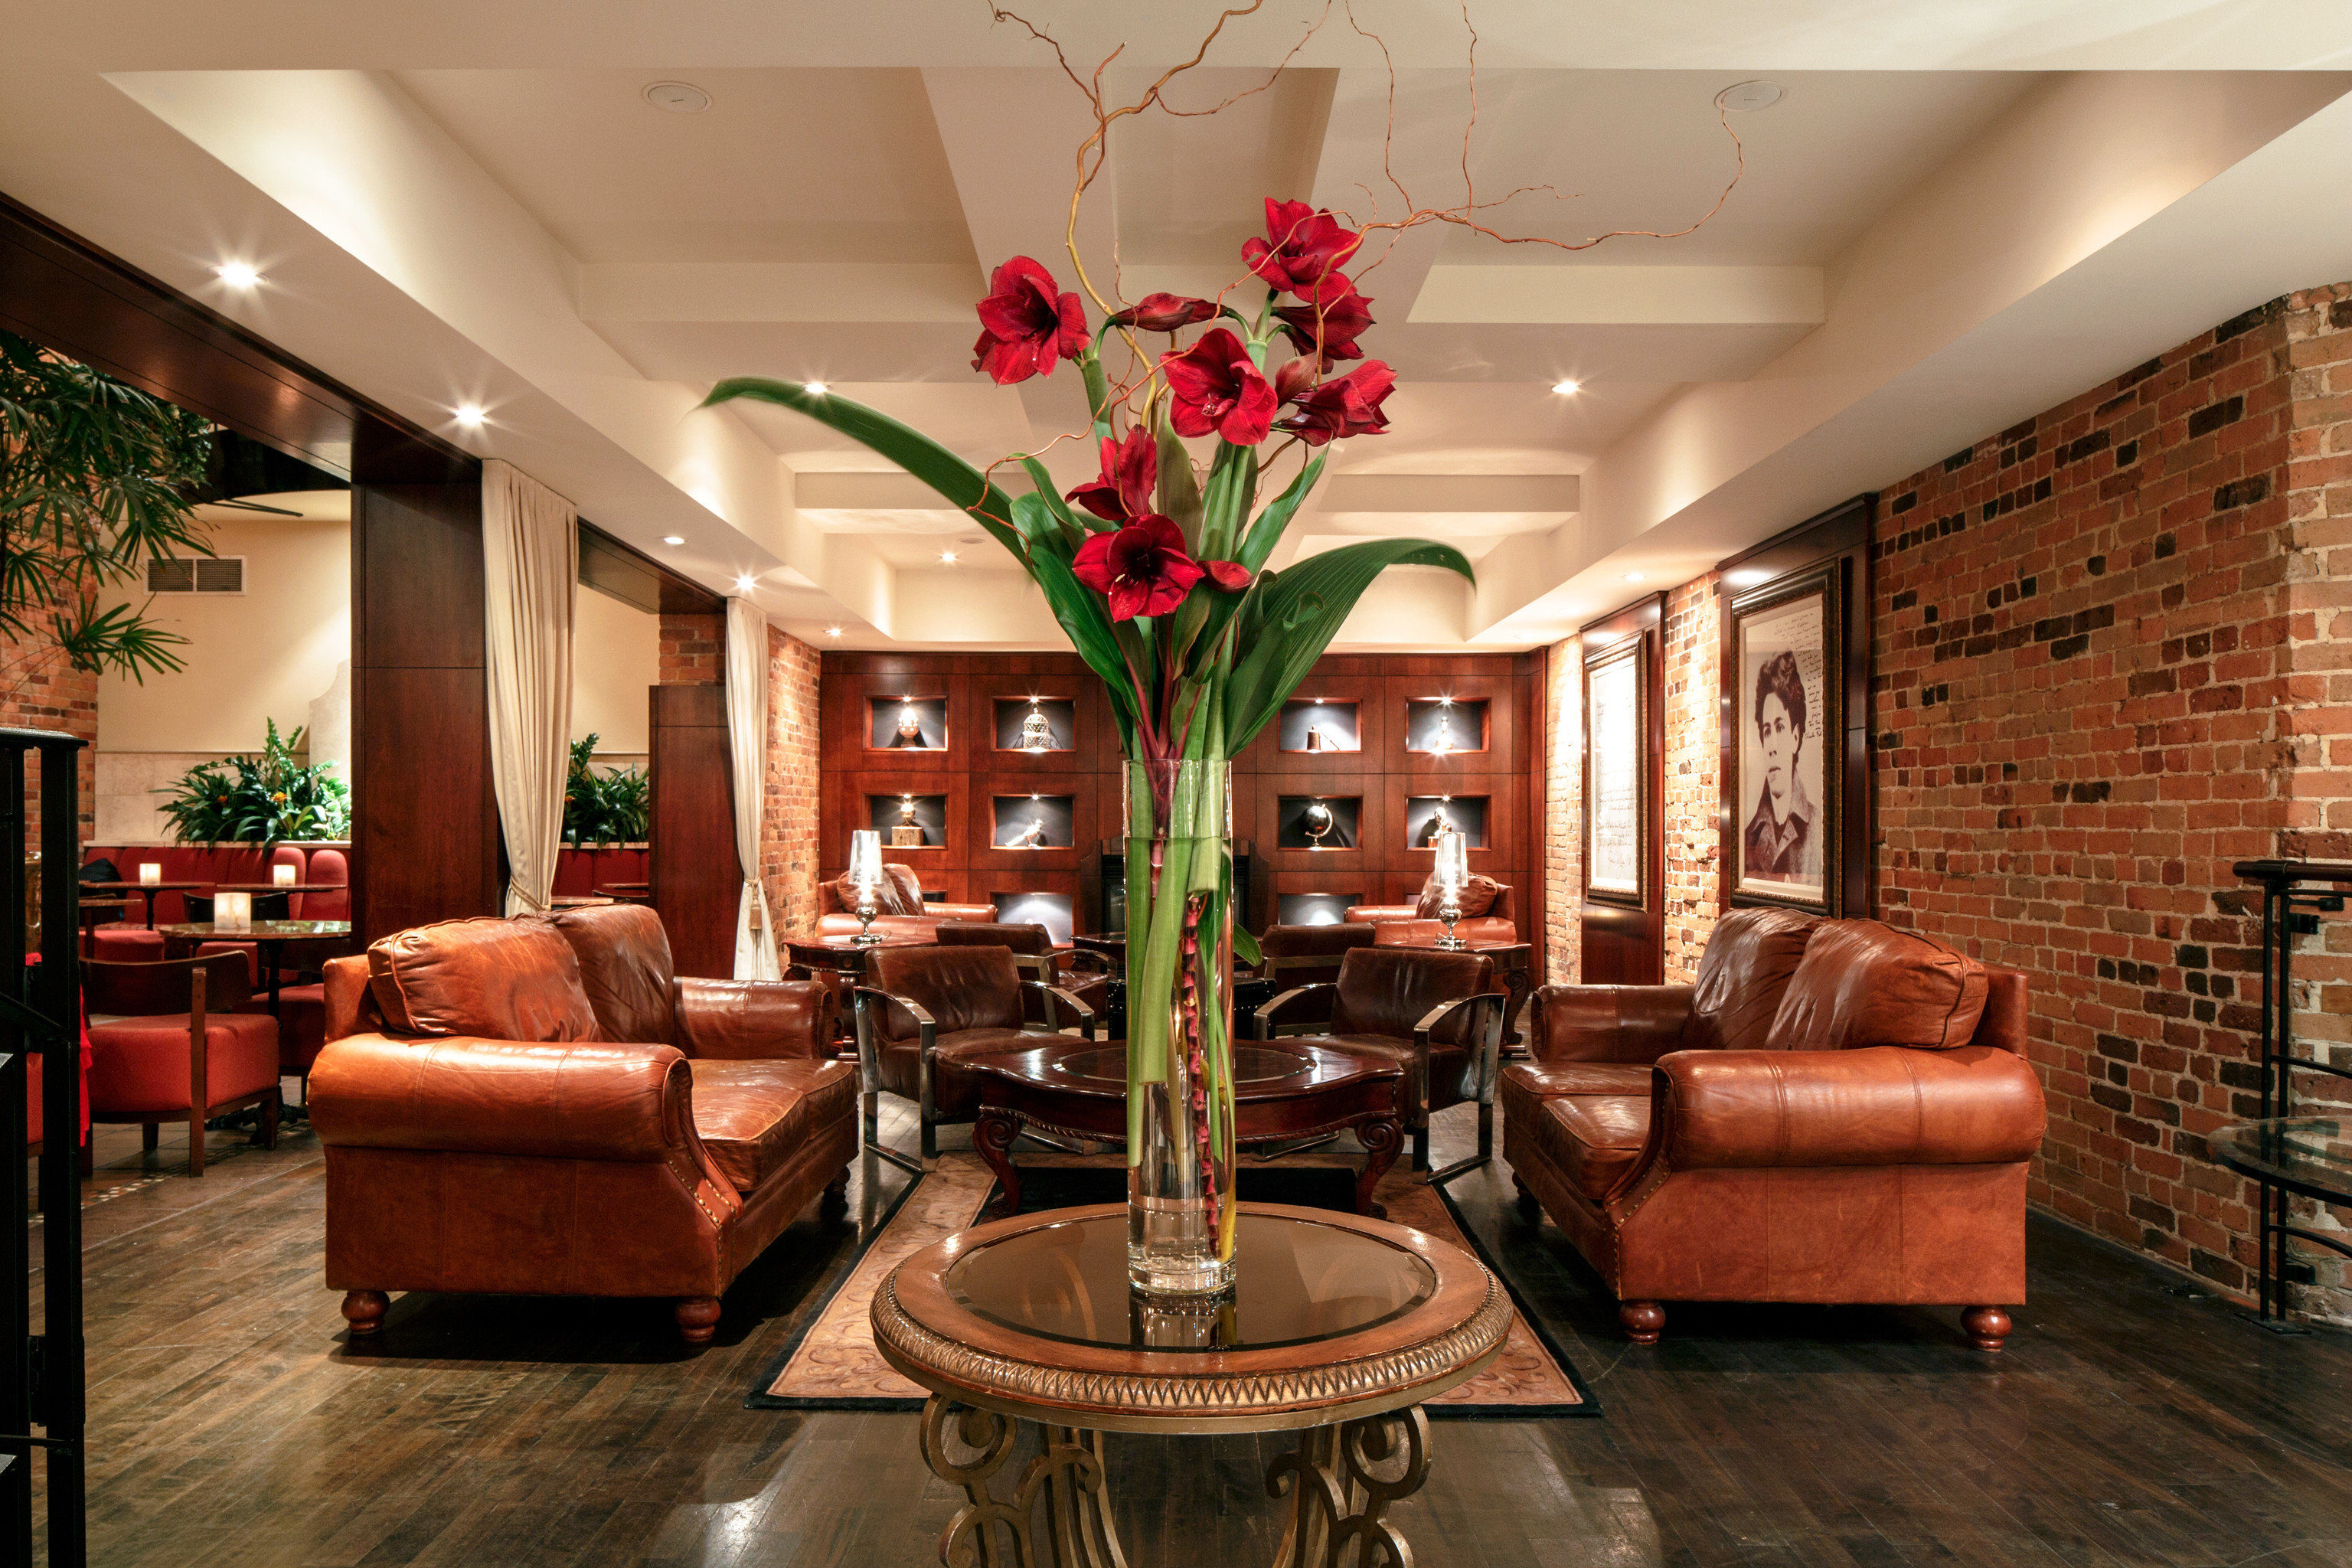 Lobby Lounge Luxury Trip Ideas Weekend Getaways Winter living room property home hardwood Fireplace plant mansion stone leather